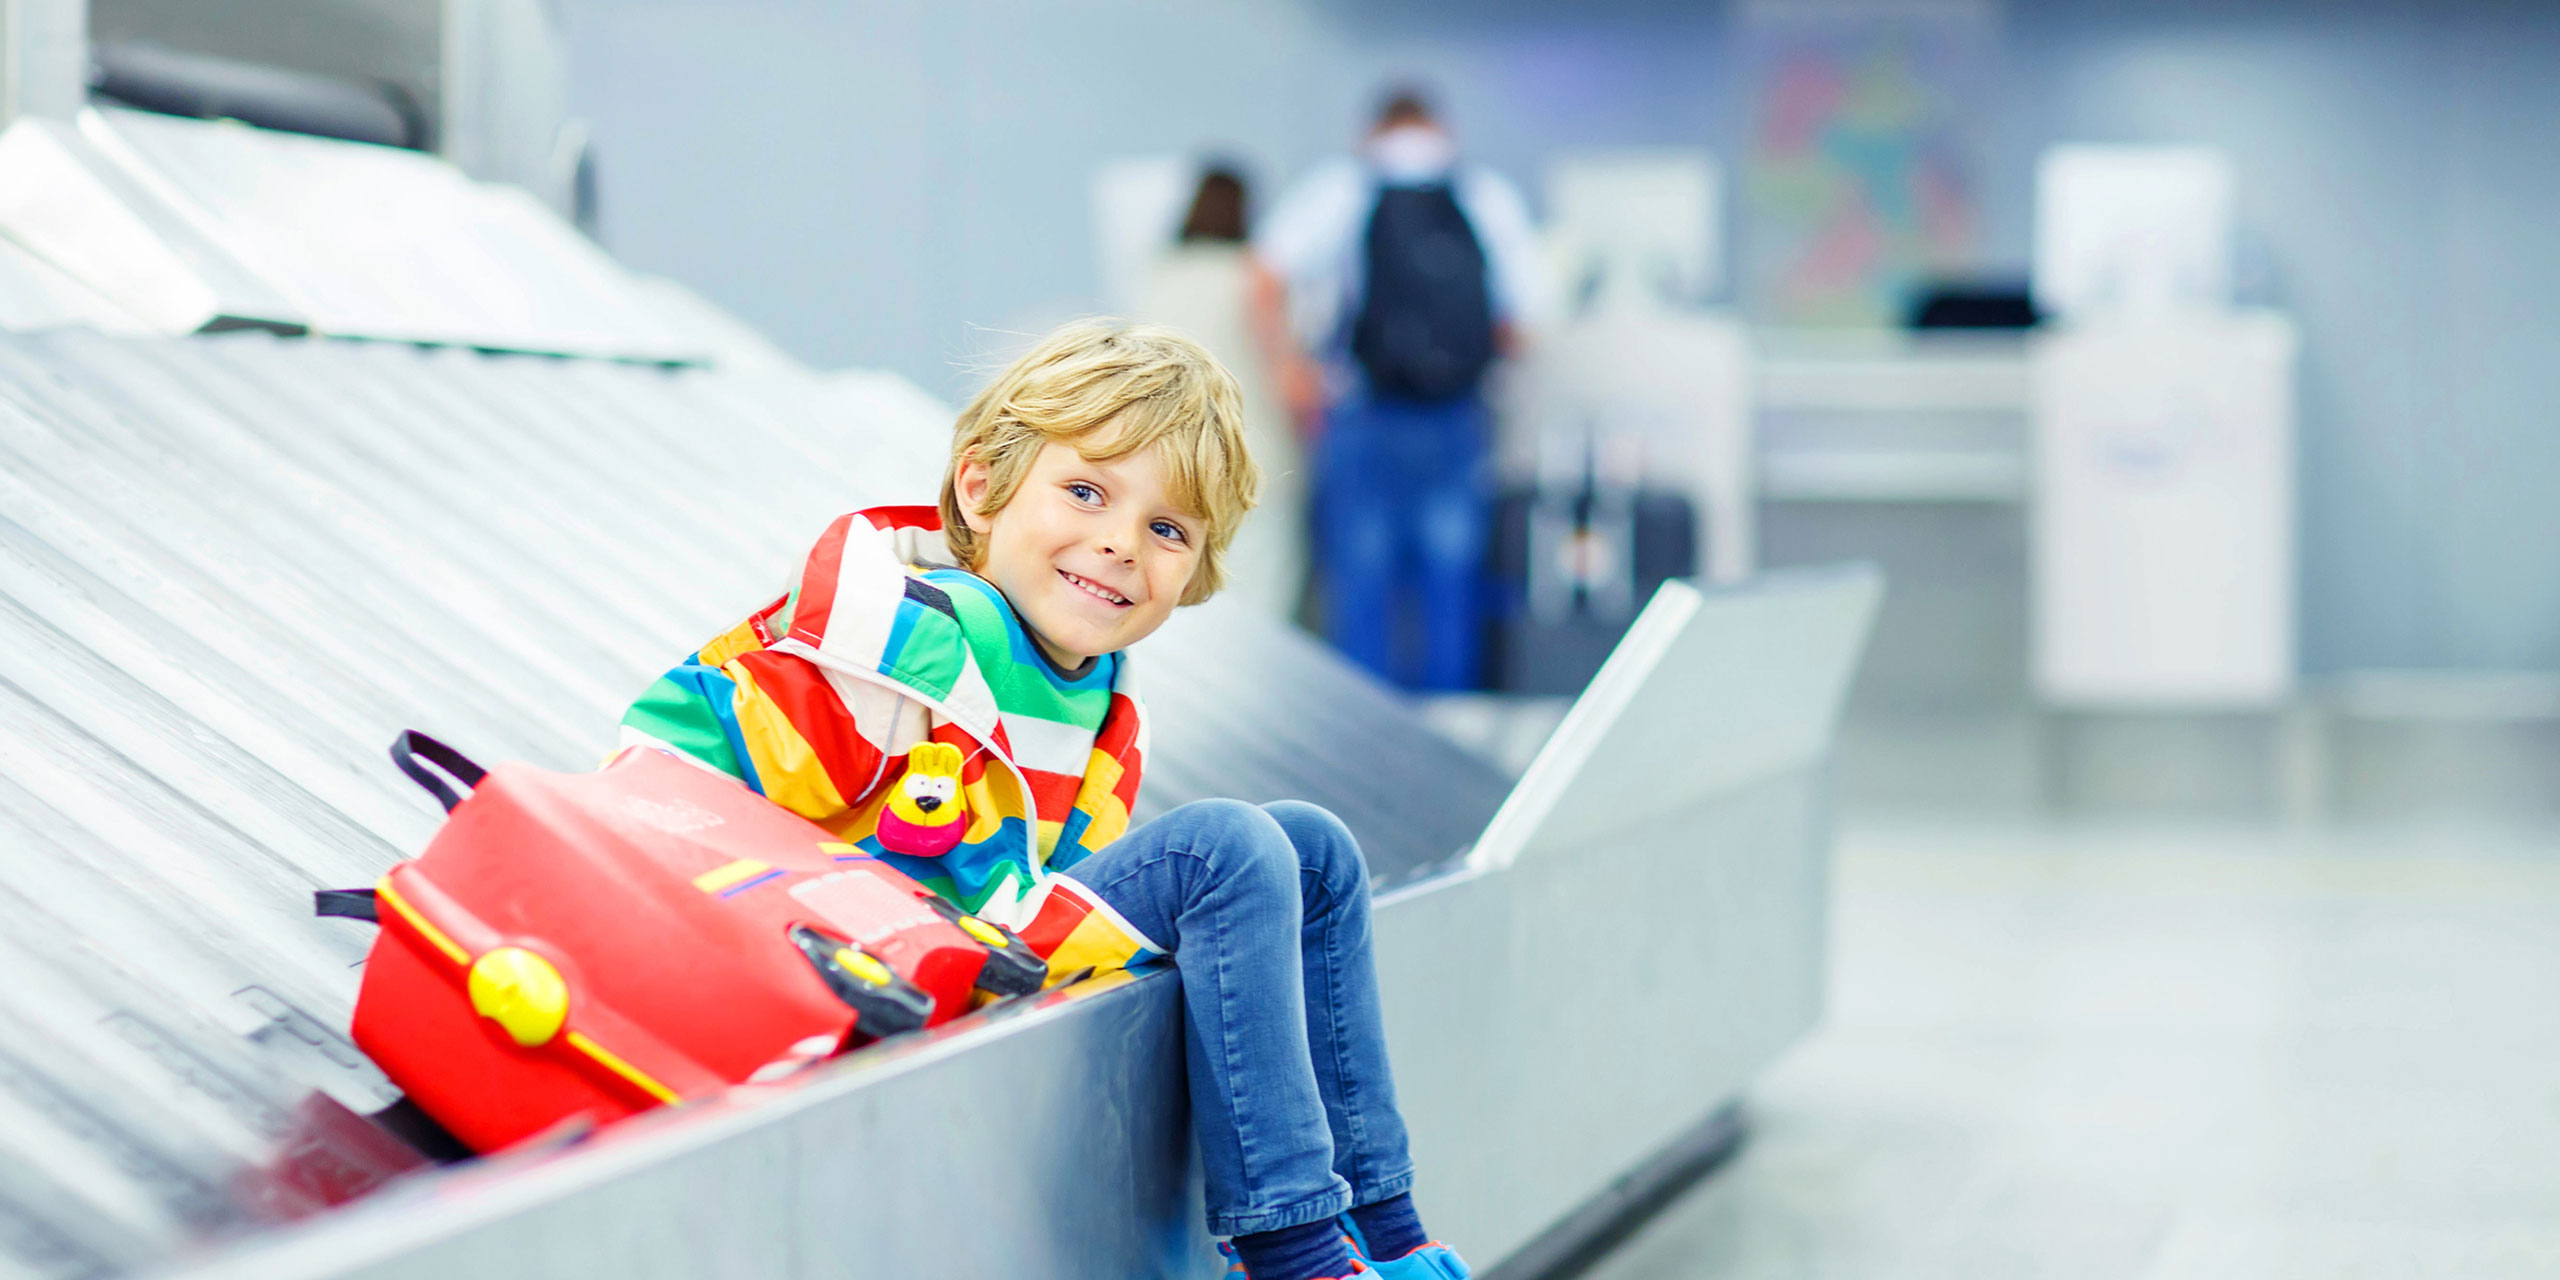 Kid at Airport Baggage Claim; Courtesy of Romrodphoto/Shutterstock.com